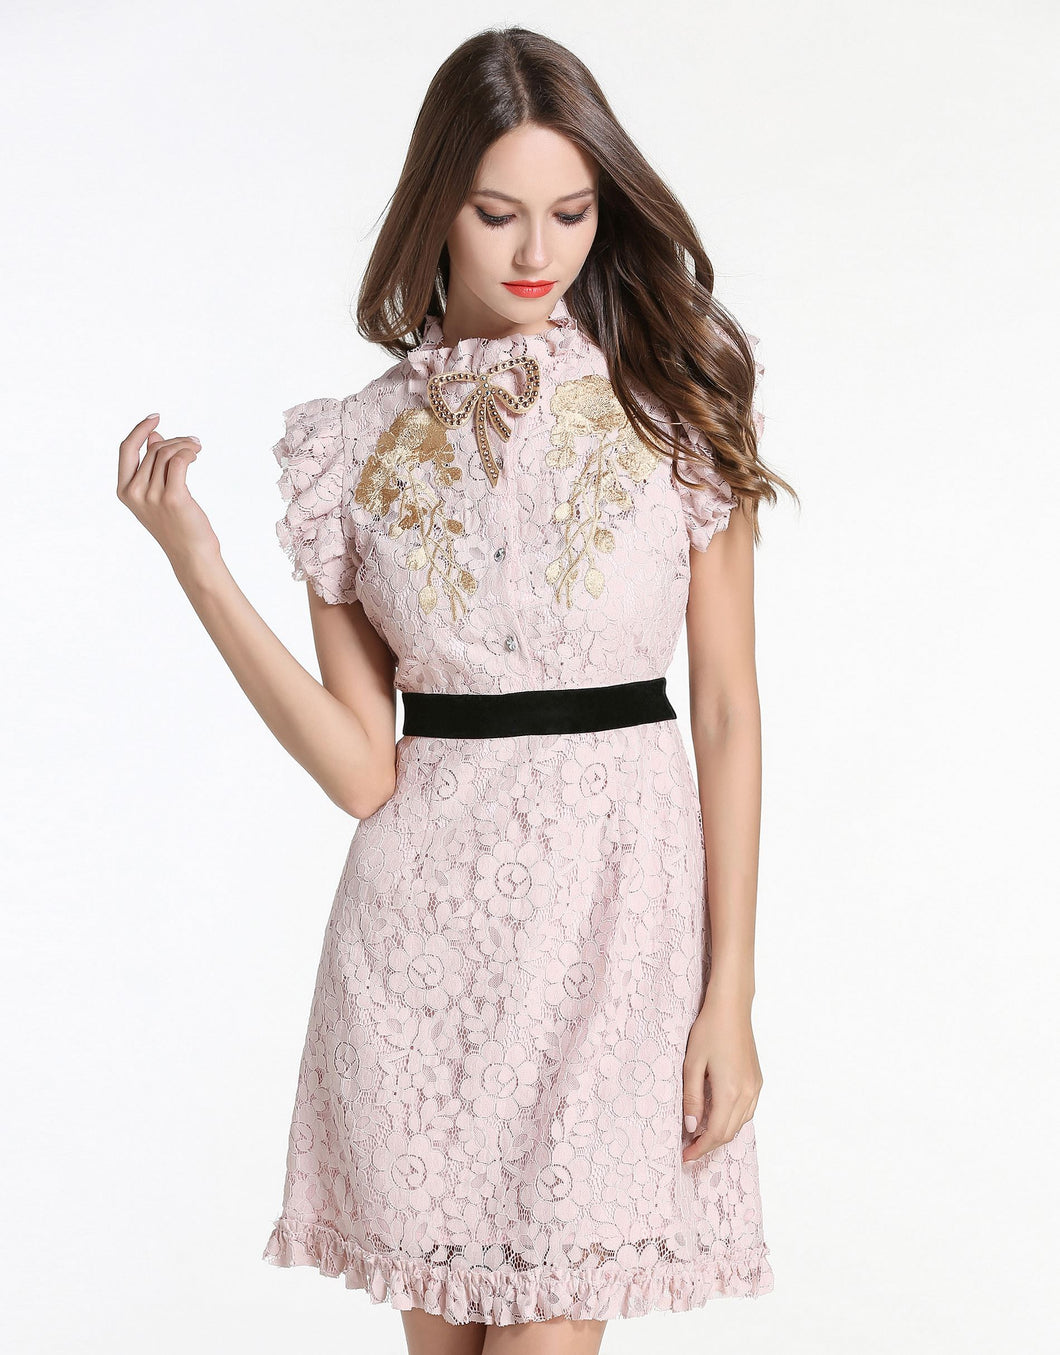 Comino Couture Cotton Candy Dress *WAS £145*